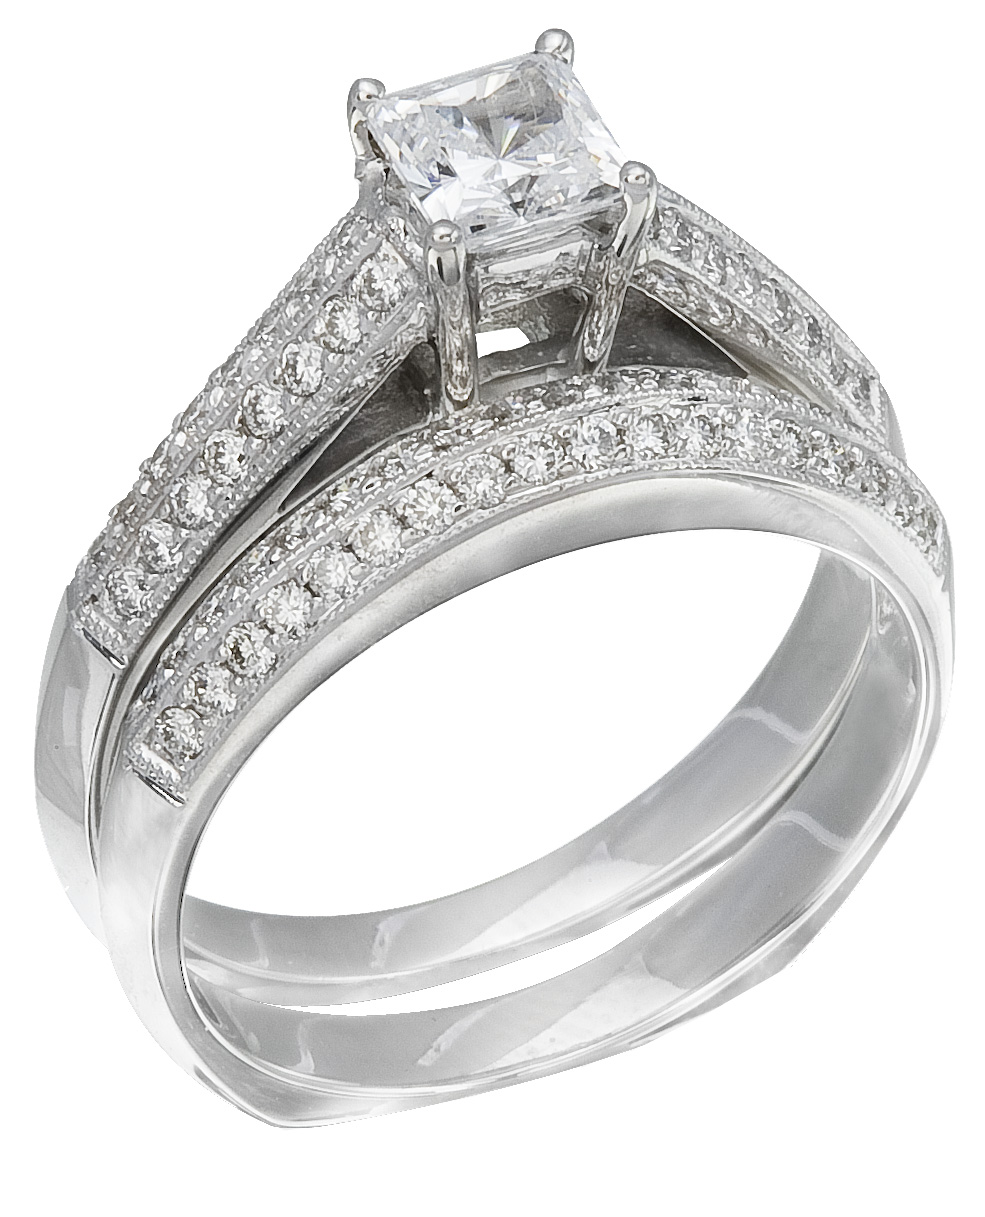 rwg222 discounted price white gold ring